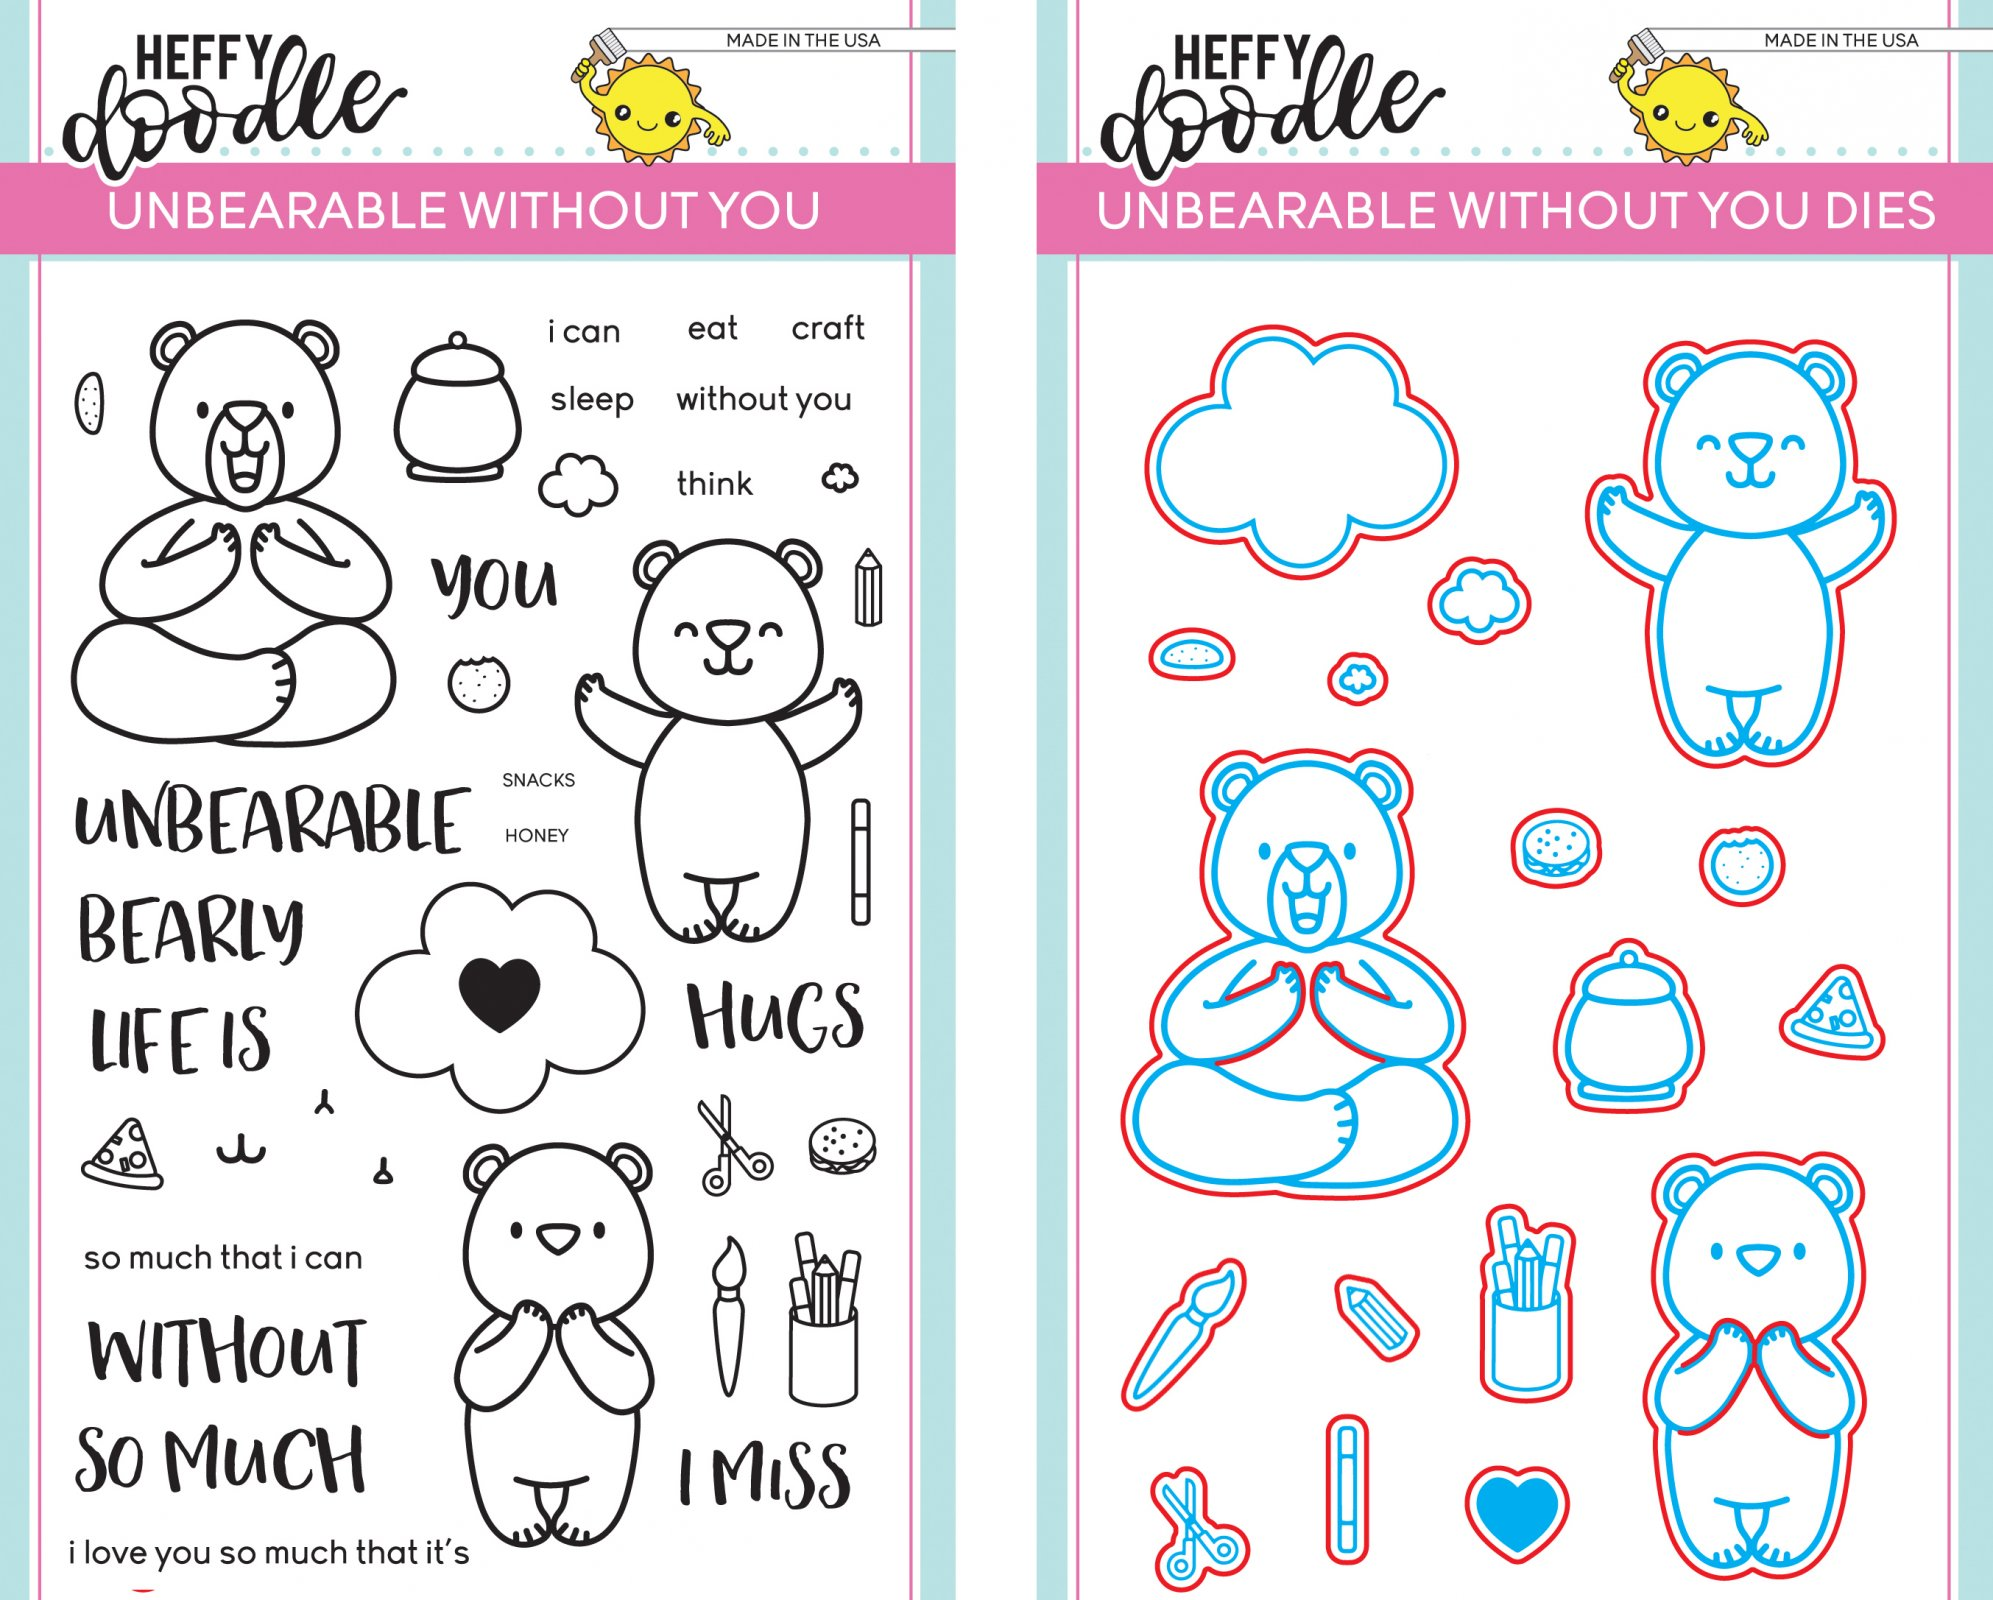 Heffy Doodle Unbearable Without You Stamp and Die Bundle